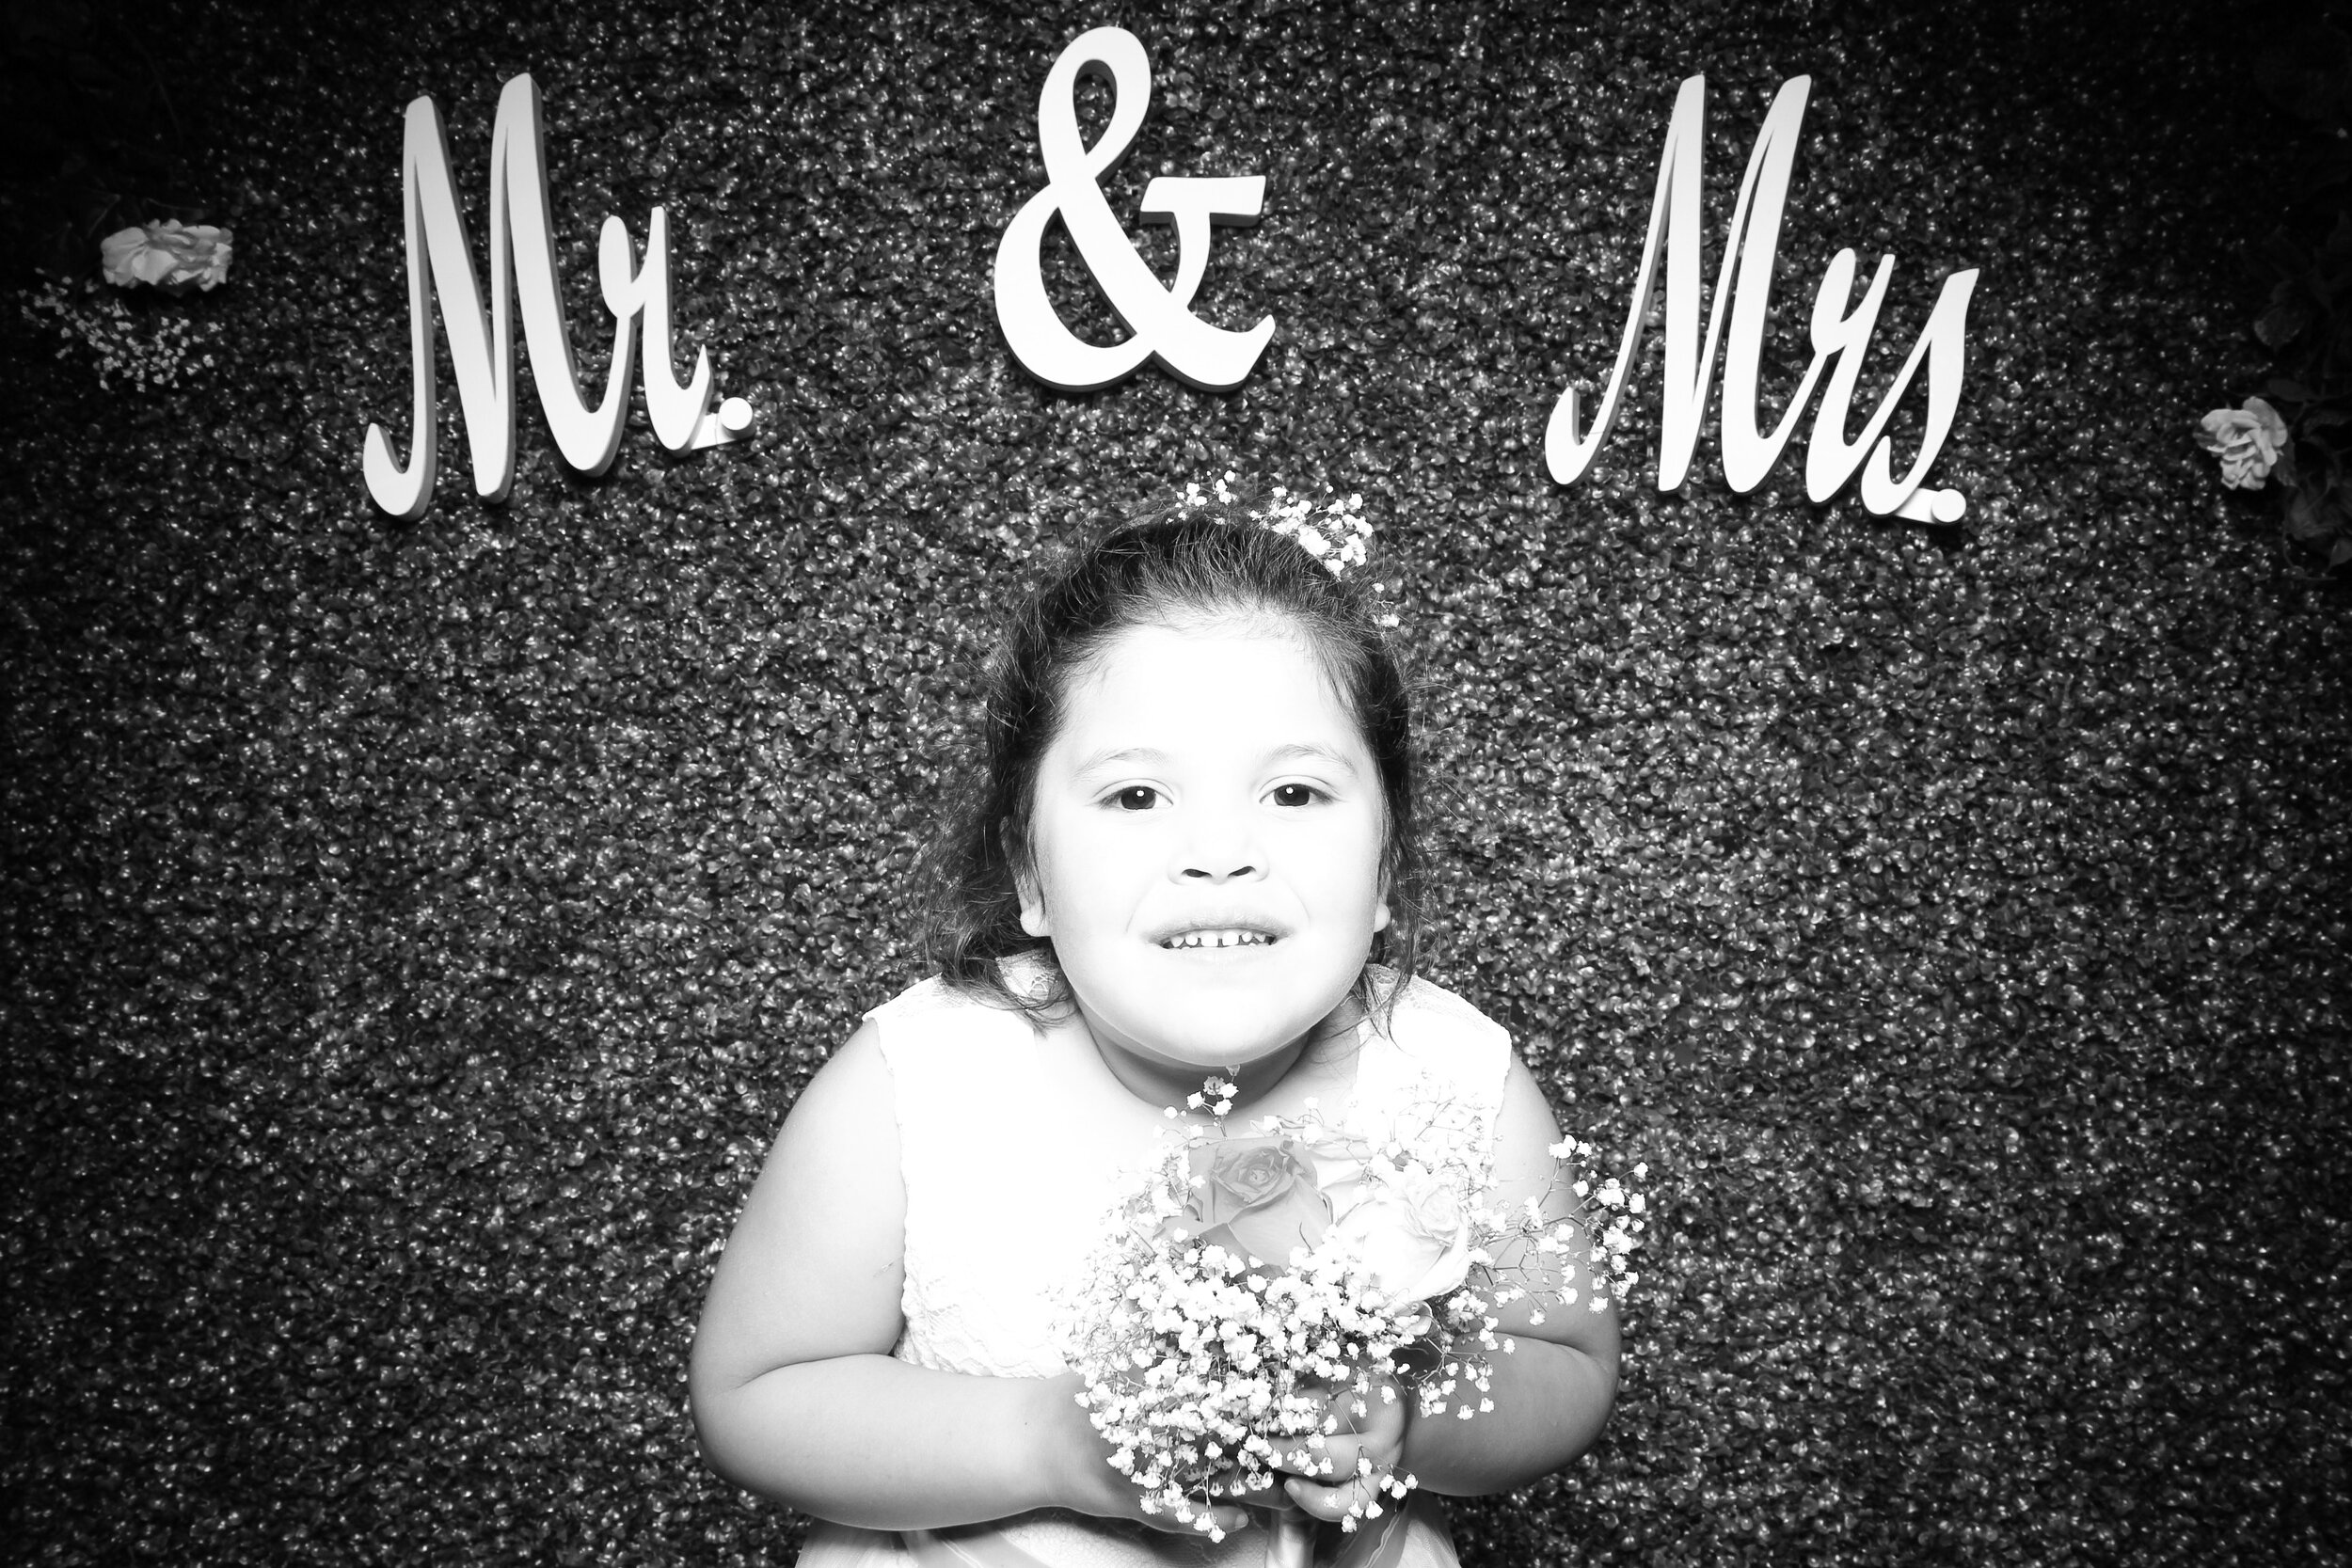 Green_Hedge_Ivy_Wall_Backdrop_Photo_Booth_Rental_Chicago_17.jpg